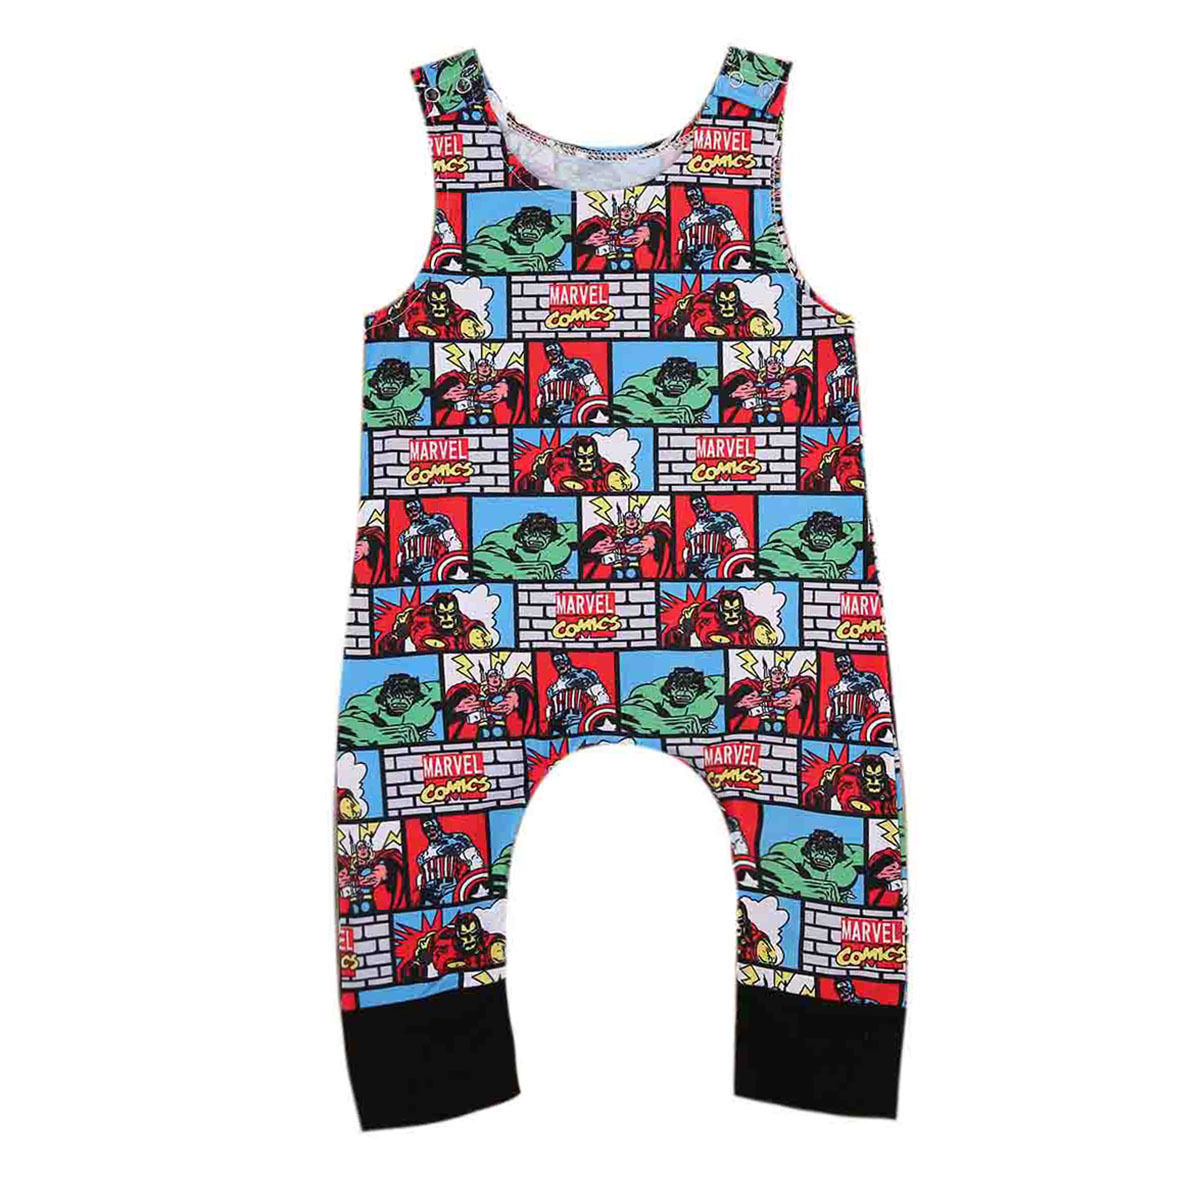 Cute Newborn Baby Rompers Summer Infant Boys Sleeveless Romper Cartoon Printed Jumper Cotton Blend Jumpsuit Kids Baby Outfits db5033 dave bella summer new born baby unisex rompers cotton infant romper kids lovely 1 pc children romper